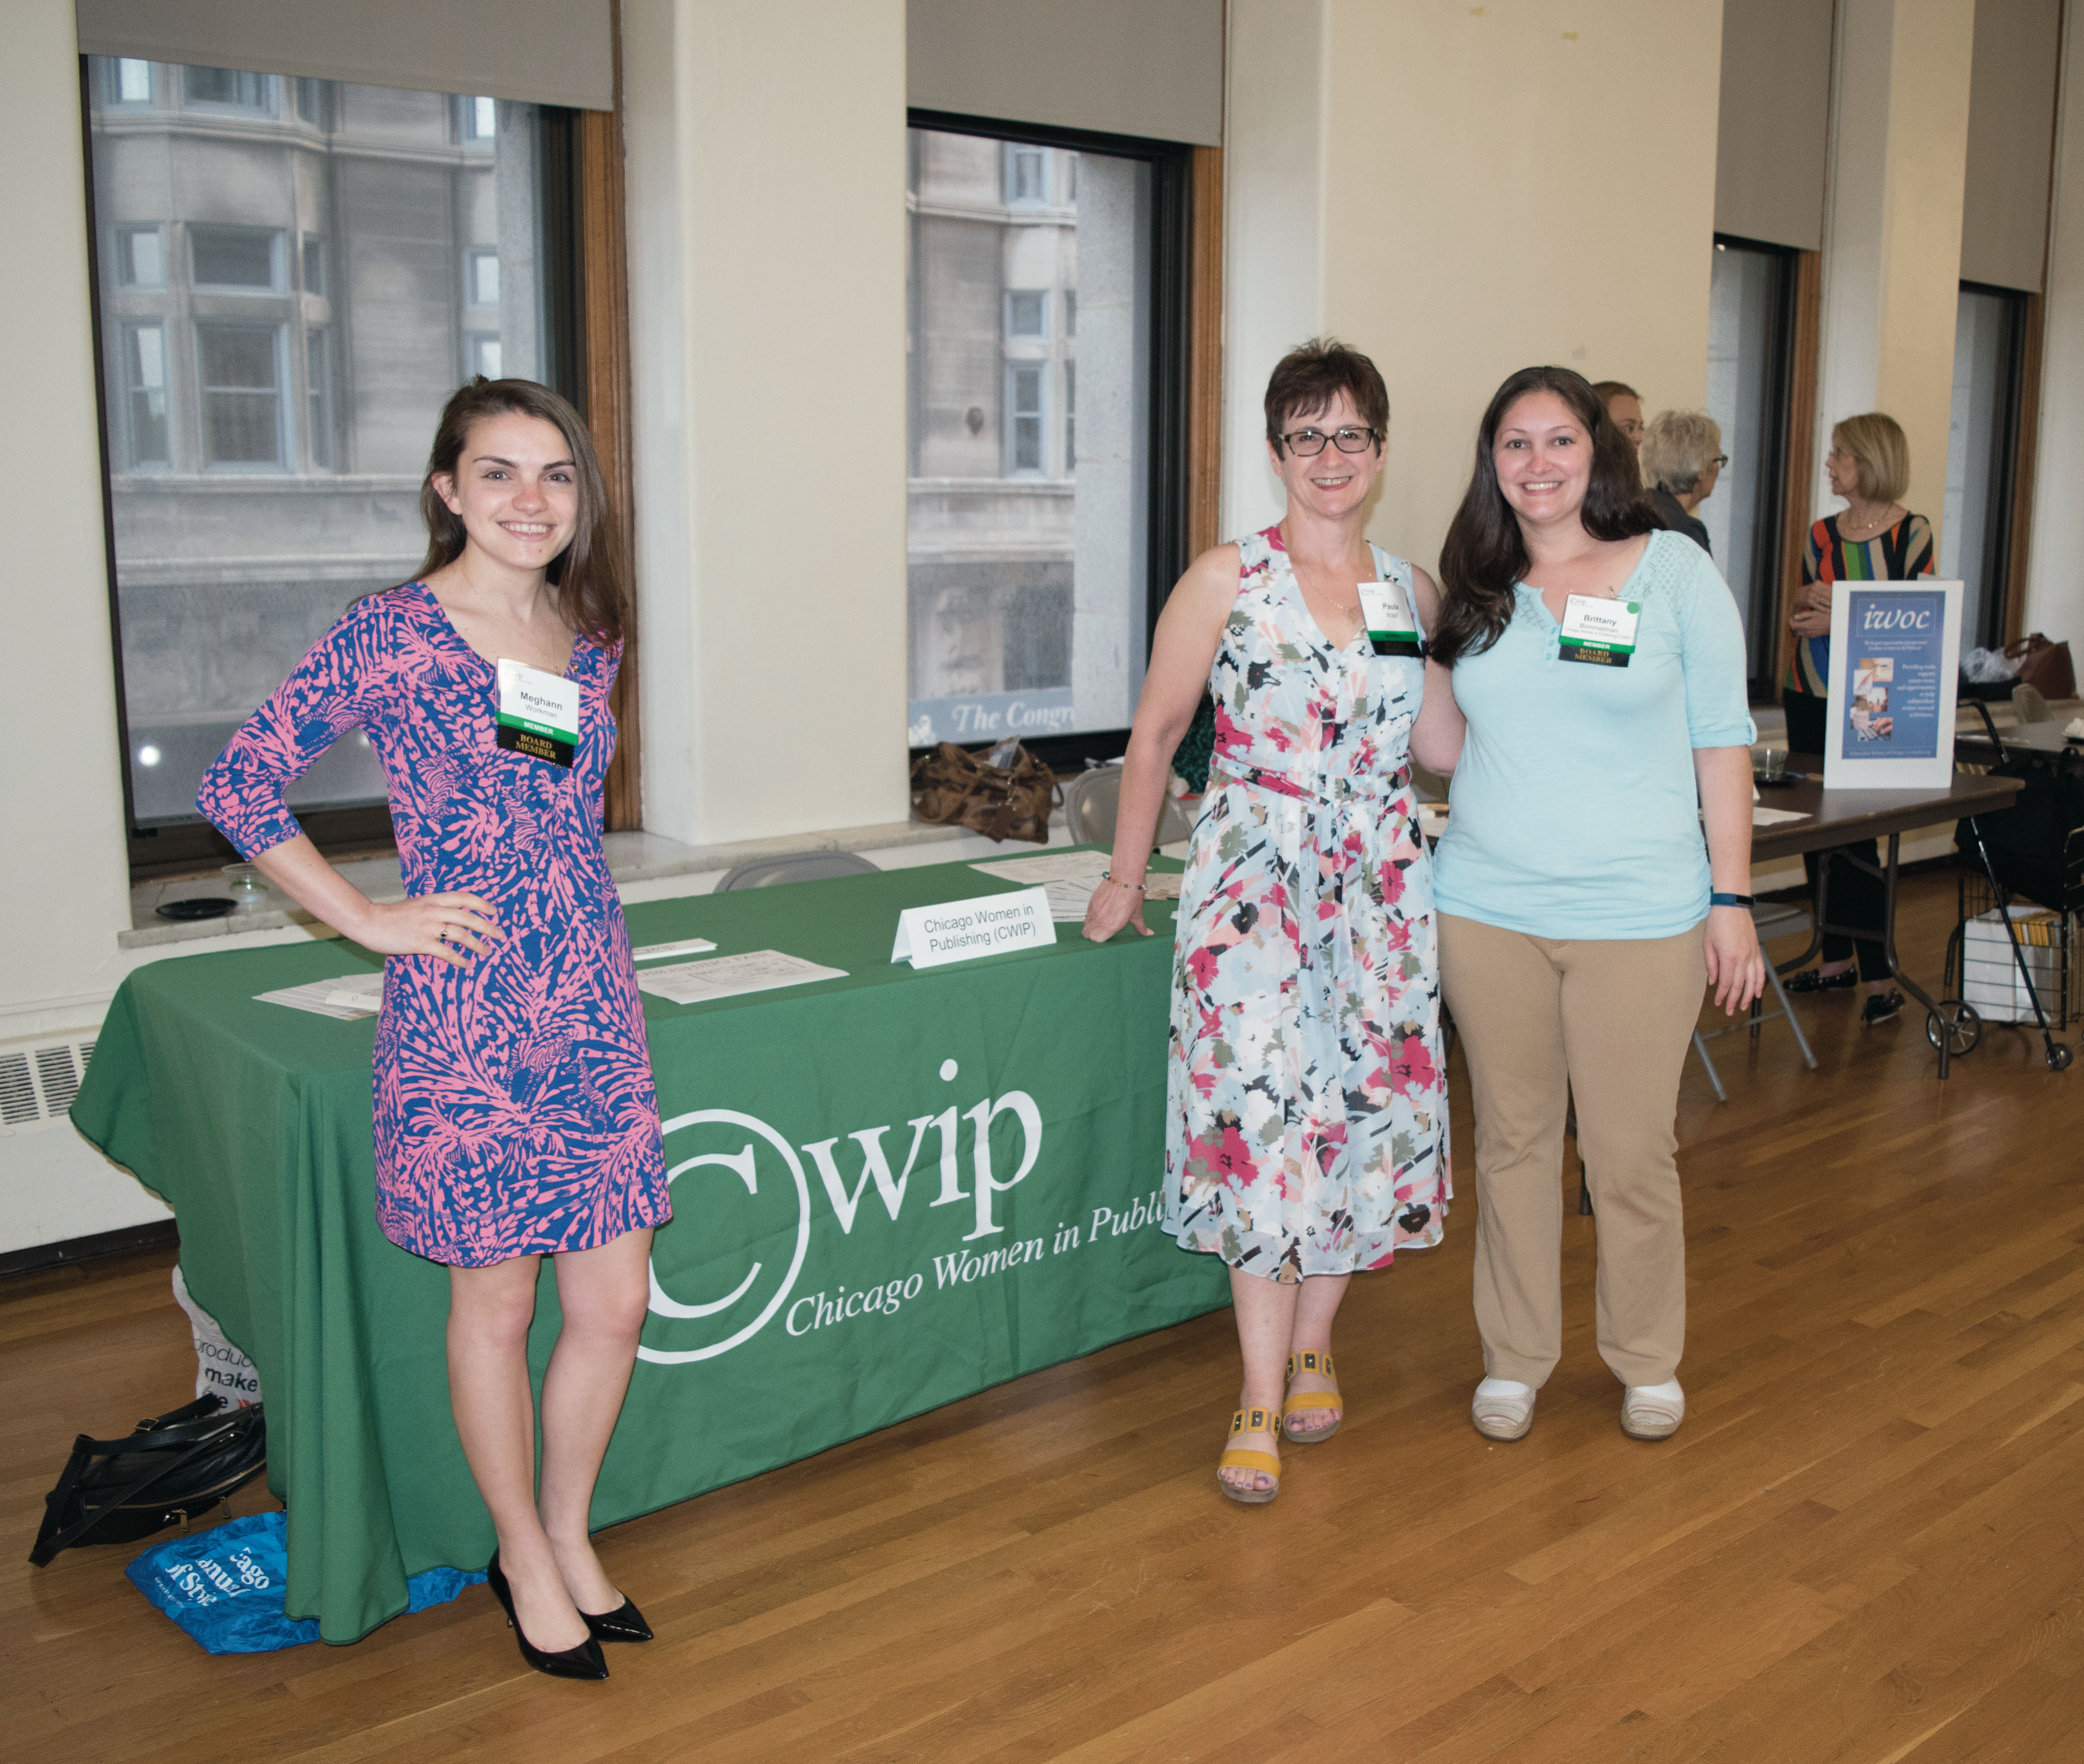 Networking, socializing and learning about Chicago's publishing industry at CWIP's Publishing Fair.